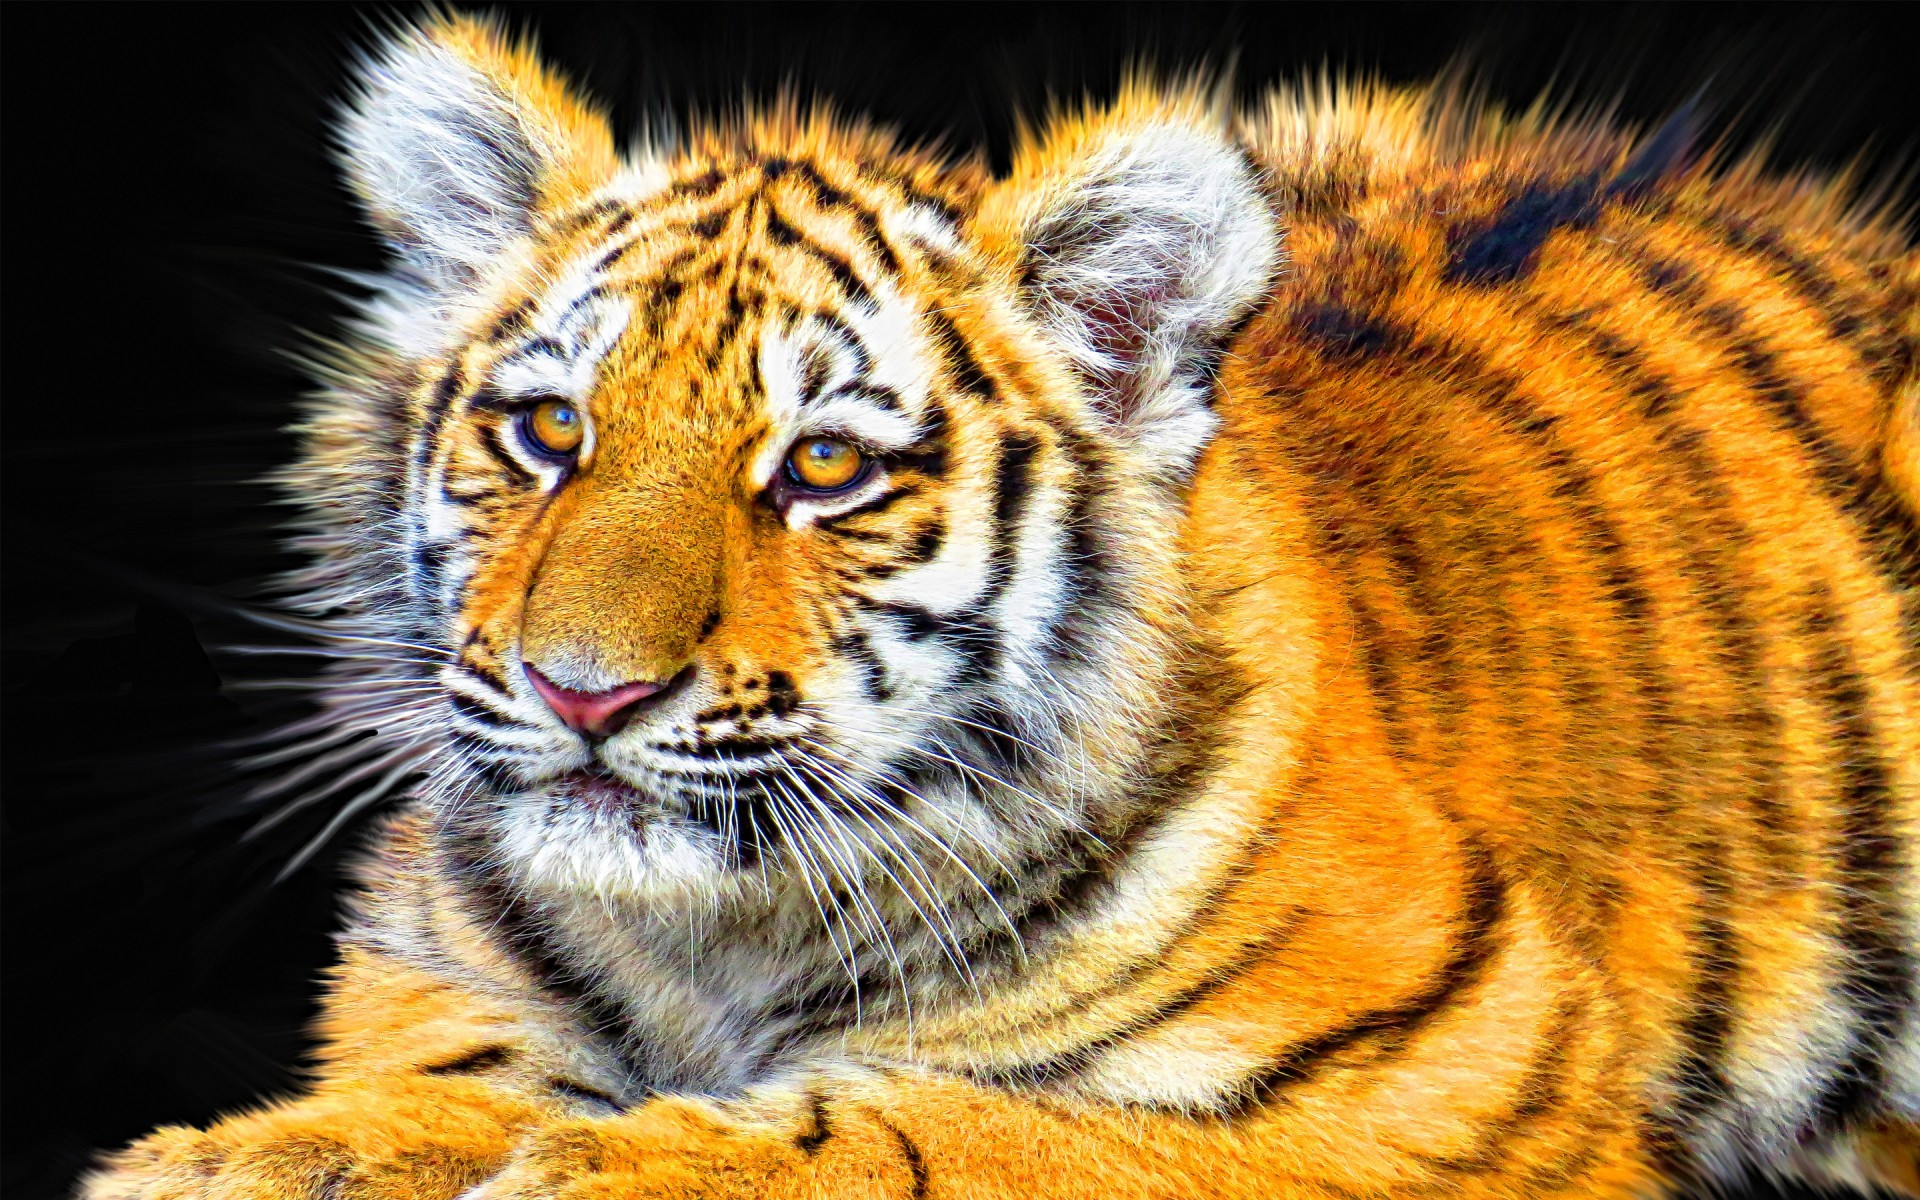 Bengal tiger hd images wallpapers 20